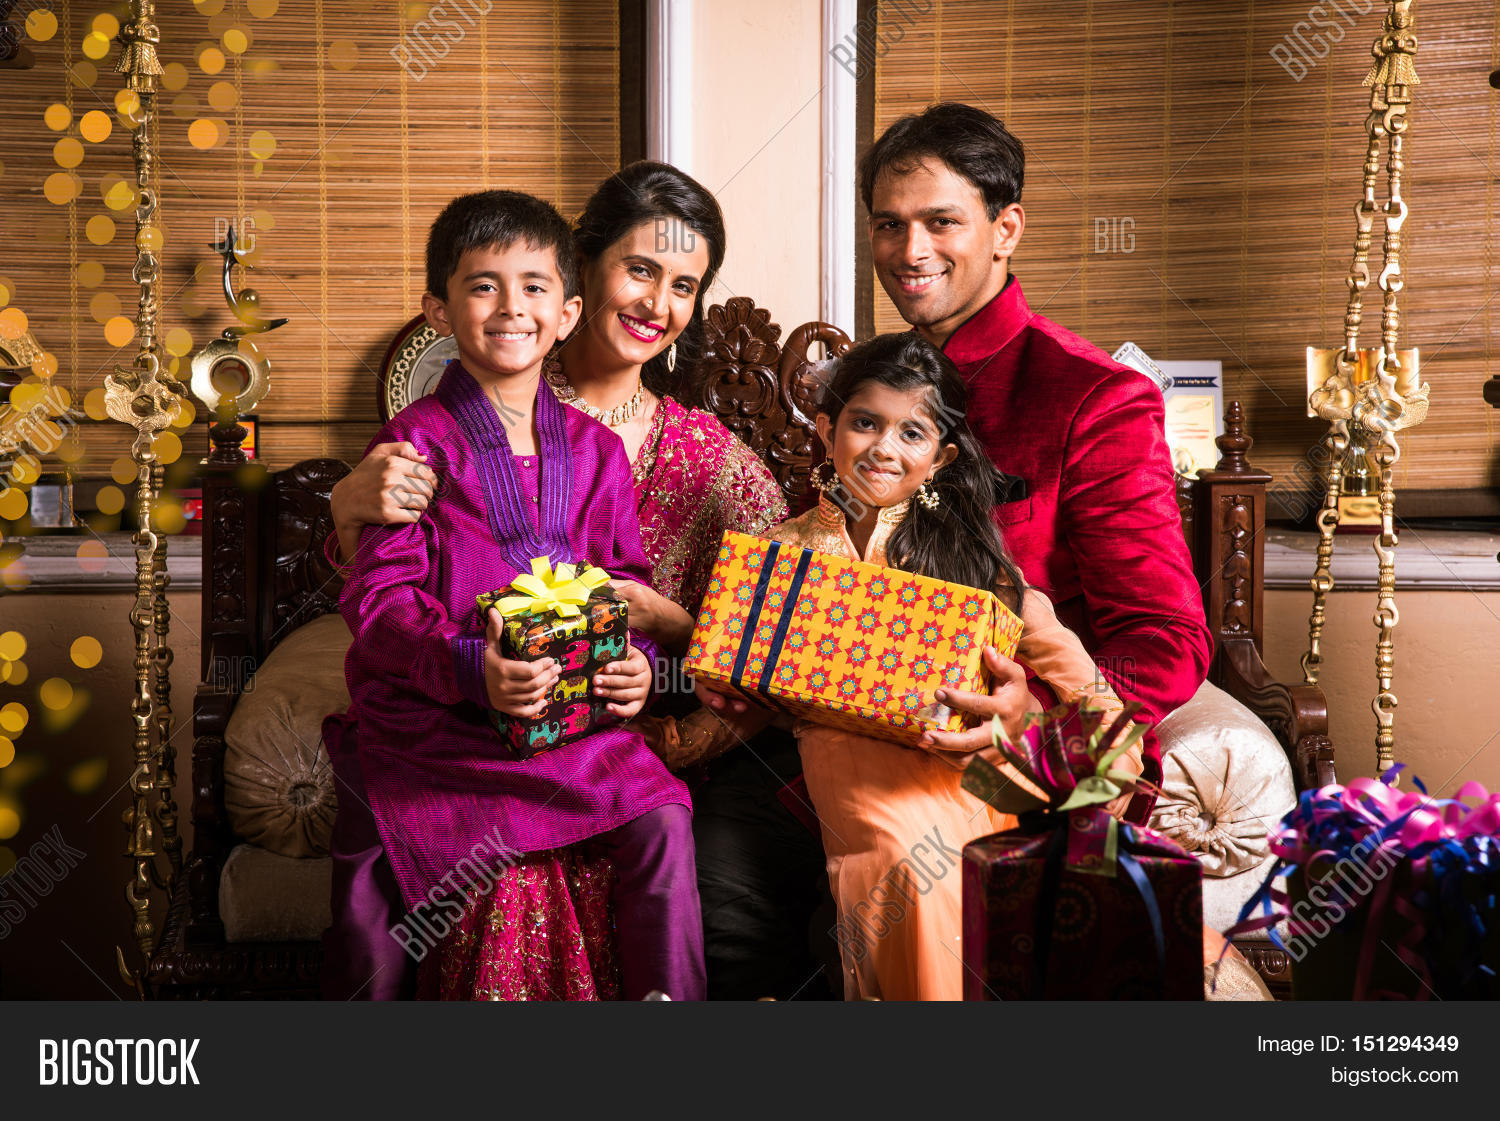 Indian Family Celebrating Diwali Image  for Diwali Gifts For Family  555kxo